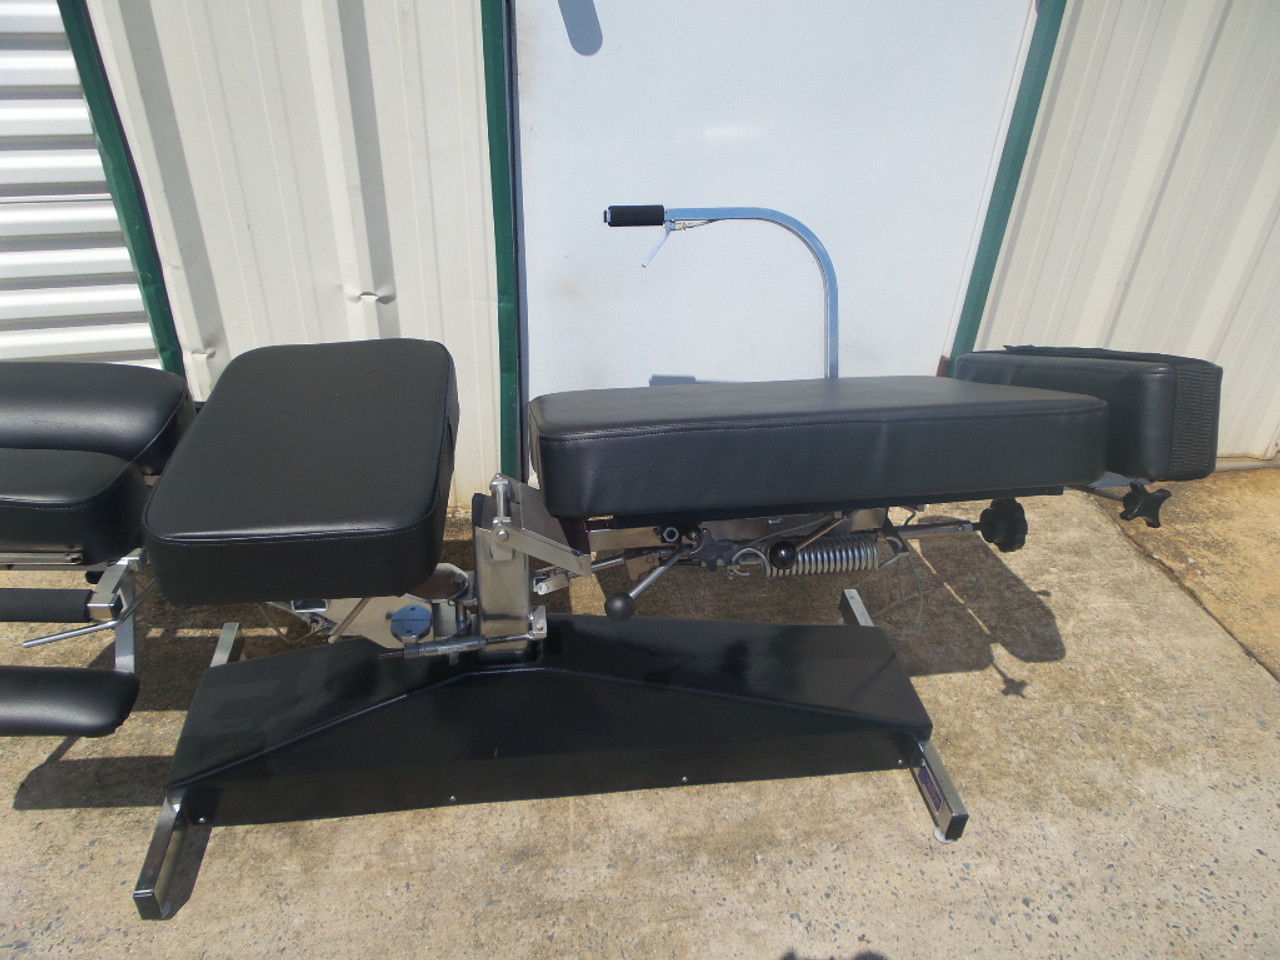 Used Leander Lite Stationary Manual Flexion Table With Pelvic Drop